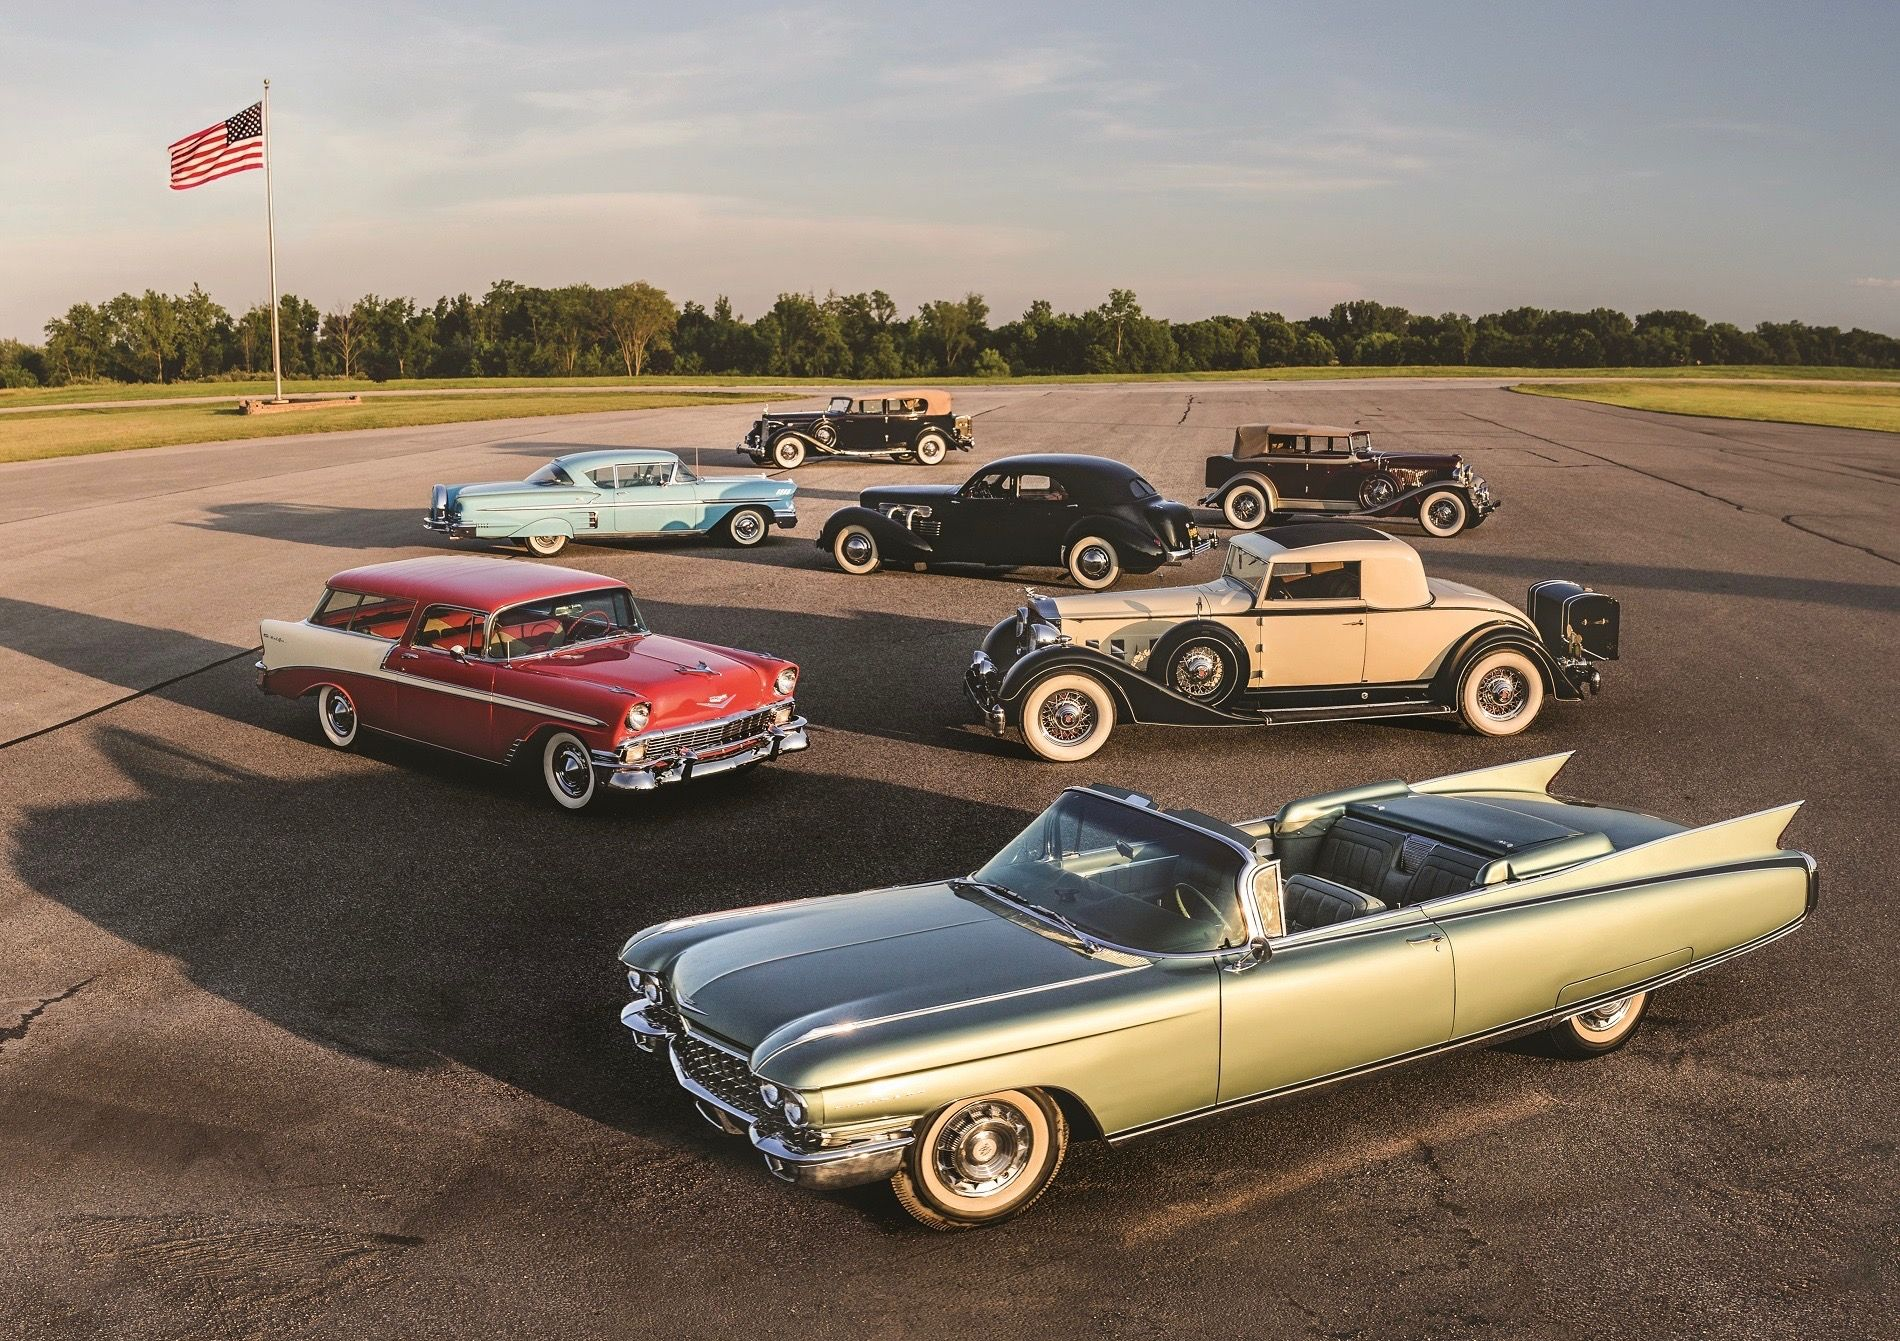 90car Meurer collection consigned to RM's Auburn sale